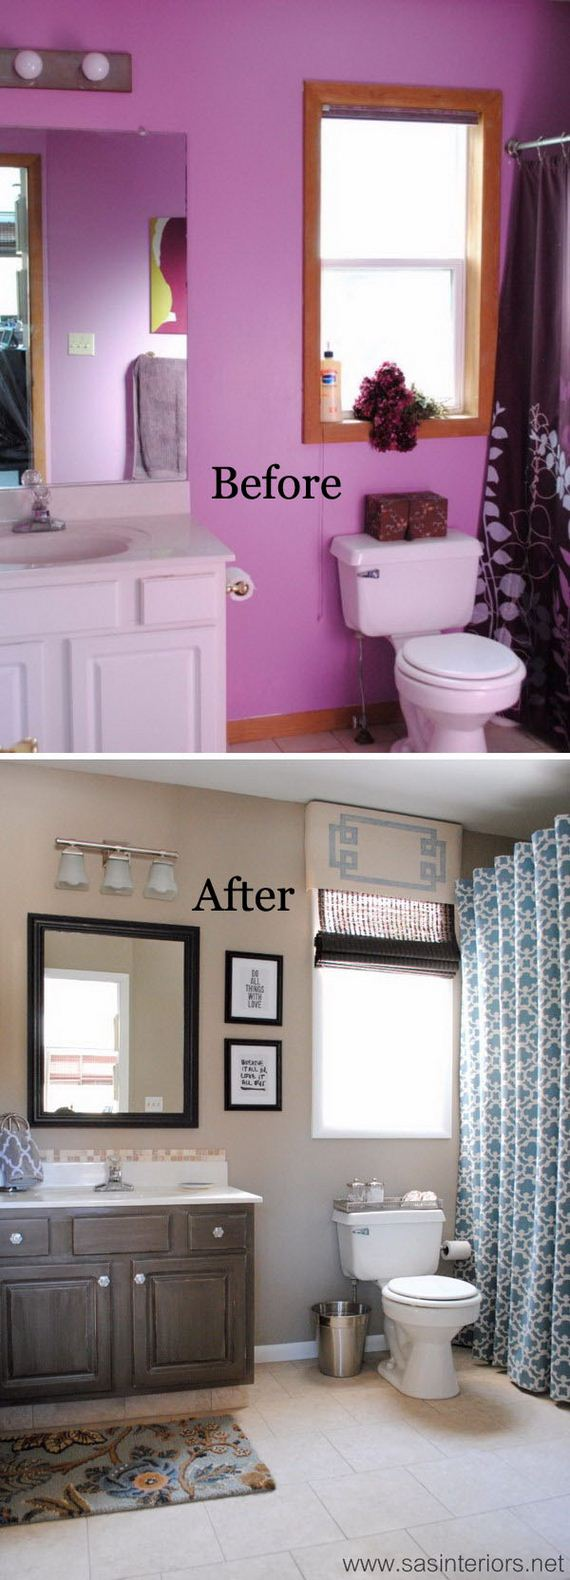 Purple and gray bathroom